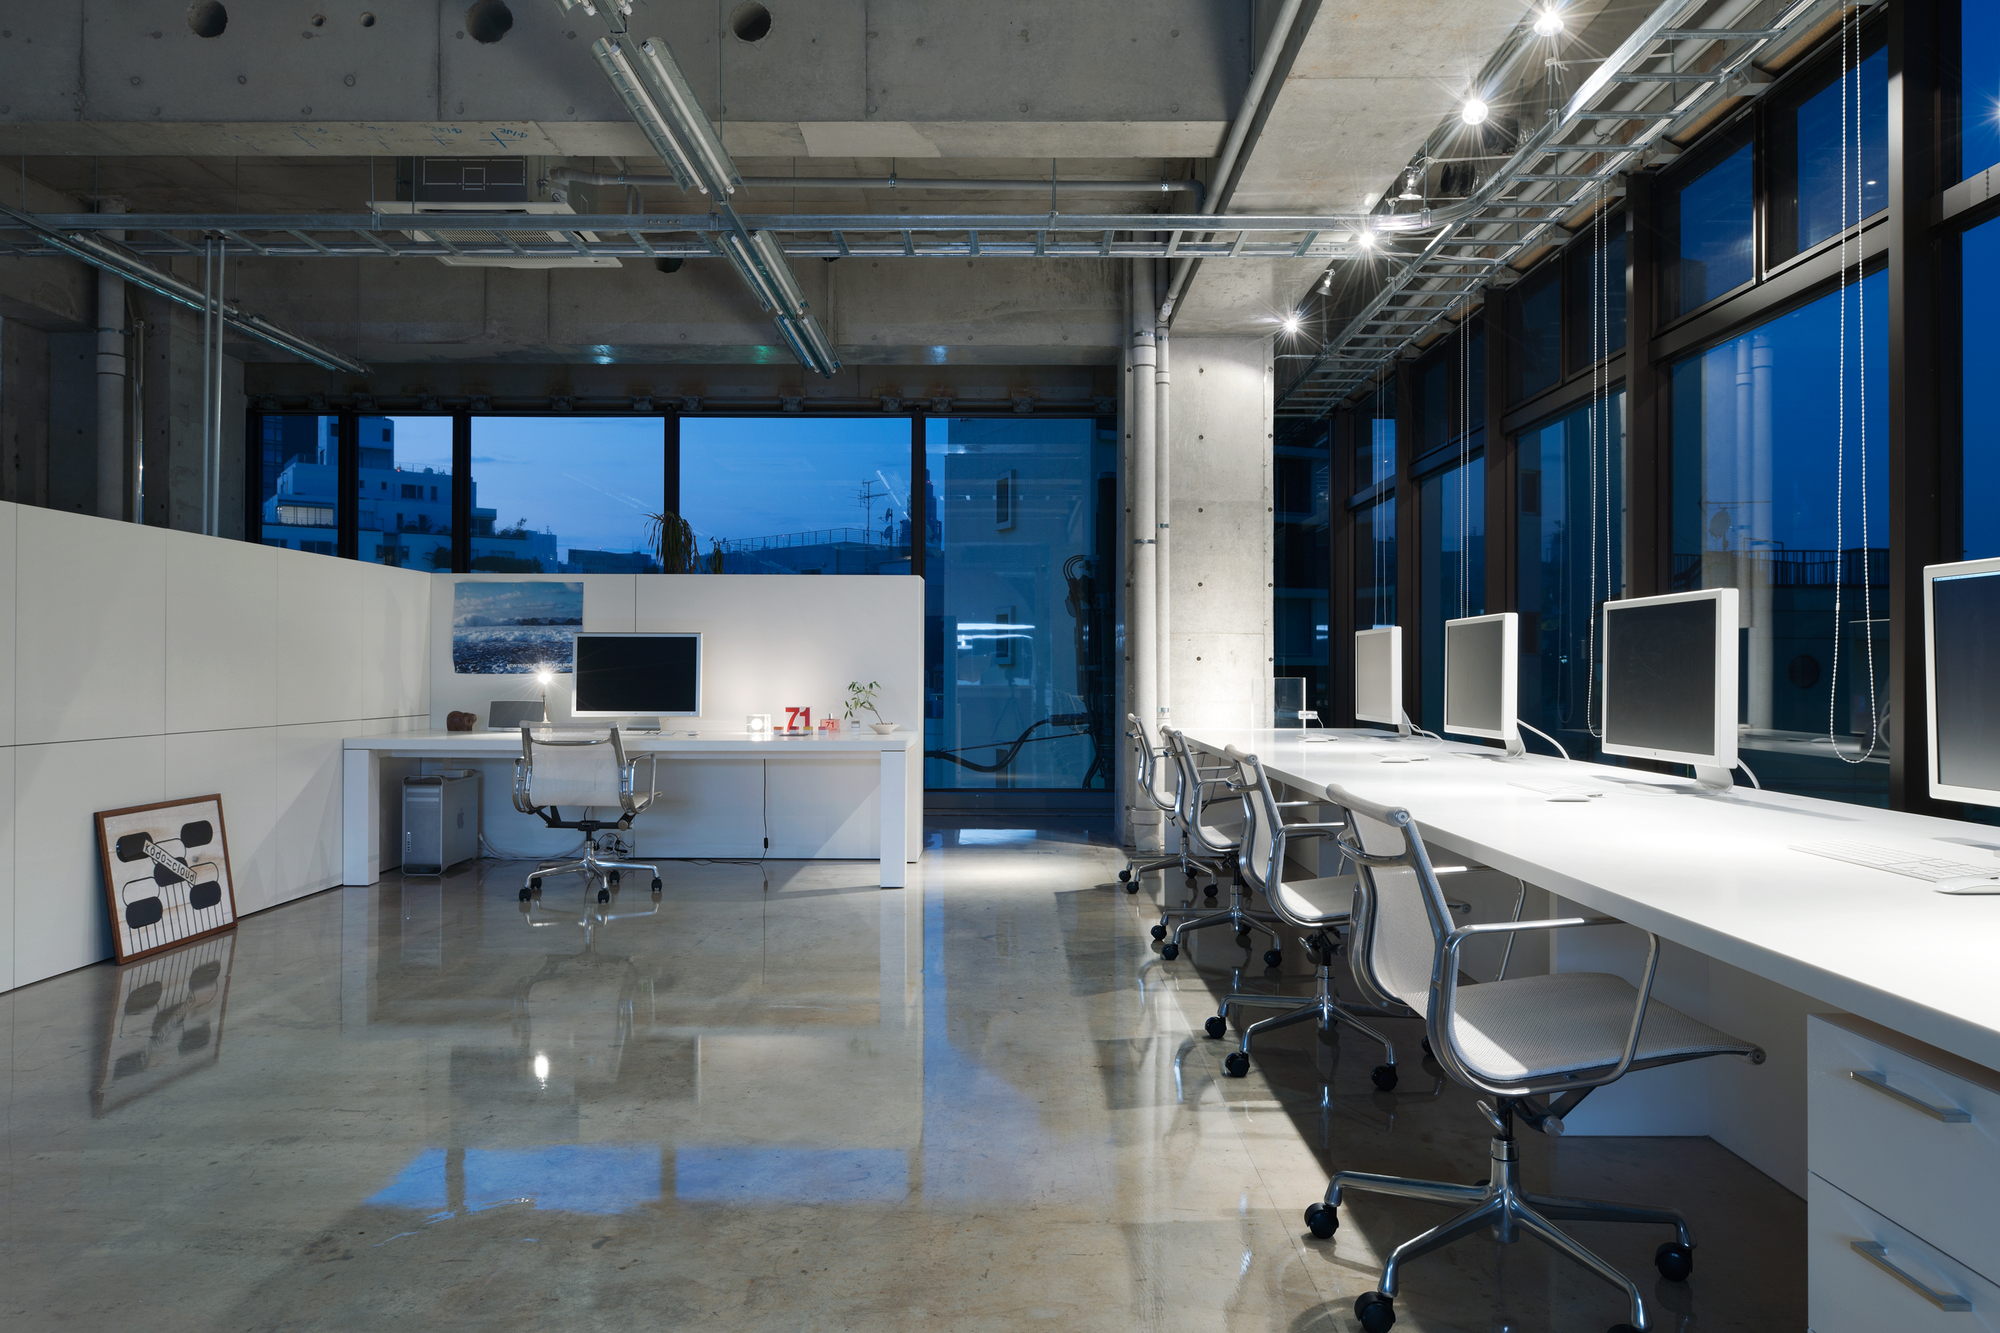 Home office design cool office space Office Desk Mrdesign Office Schemata Architects Archdaily Mrdesign Office Schemata Architects Archdaily